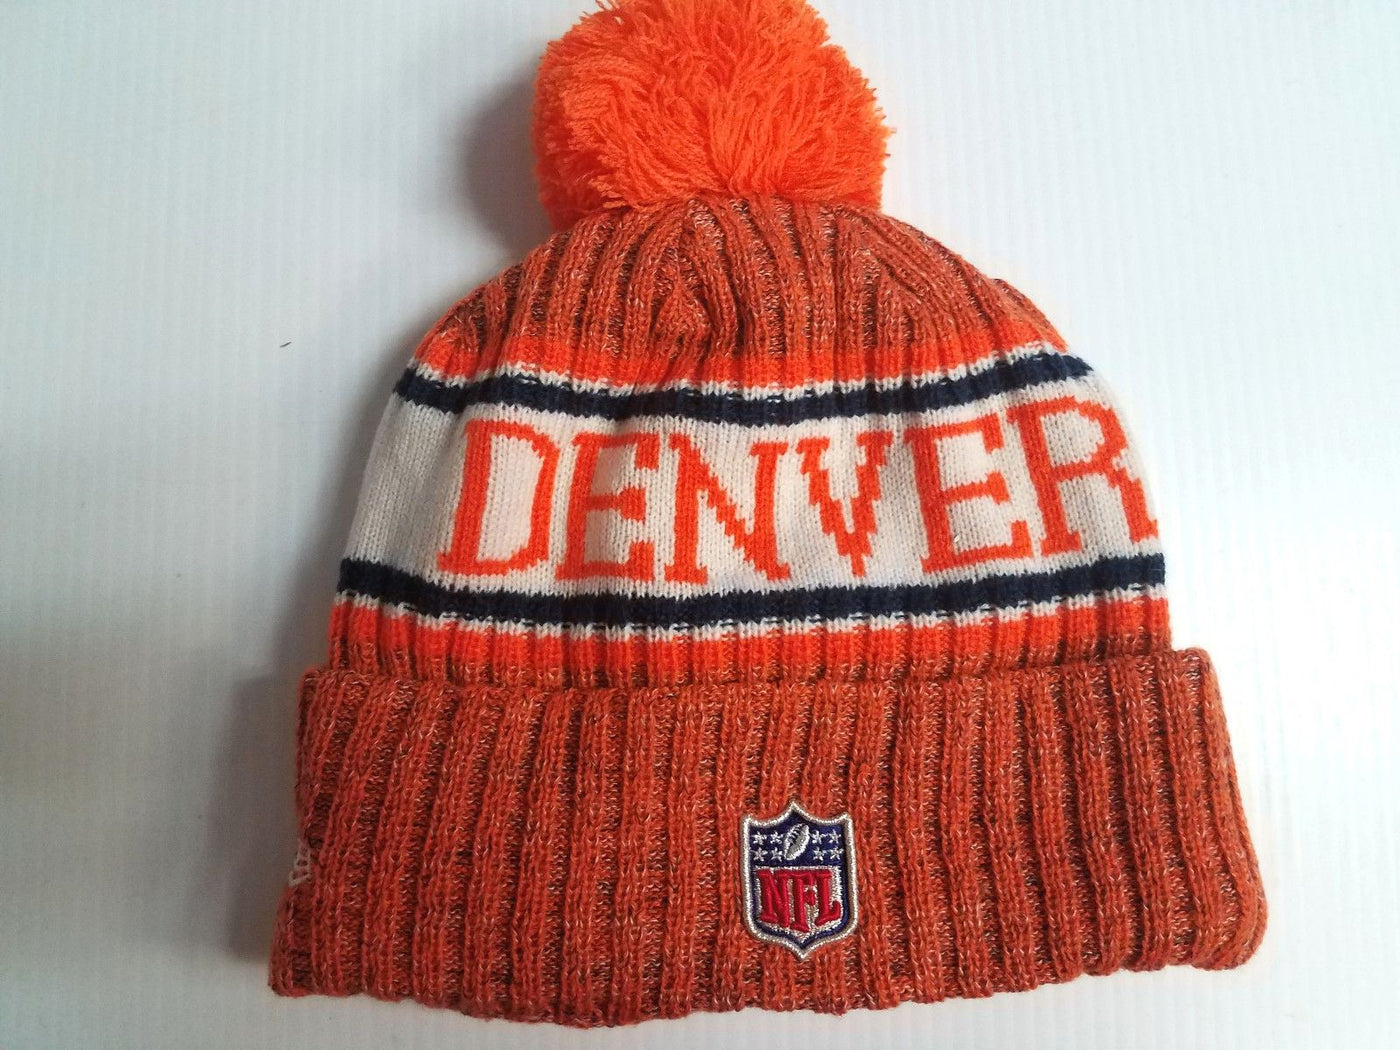 the latest 48a9e 6f713 ... nfl sideline cold weather official sport ireland denver broncos new era  knit hat on field 2018 sideline beanie stocking cap 19f42 ca0ea ...